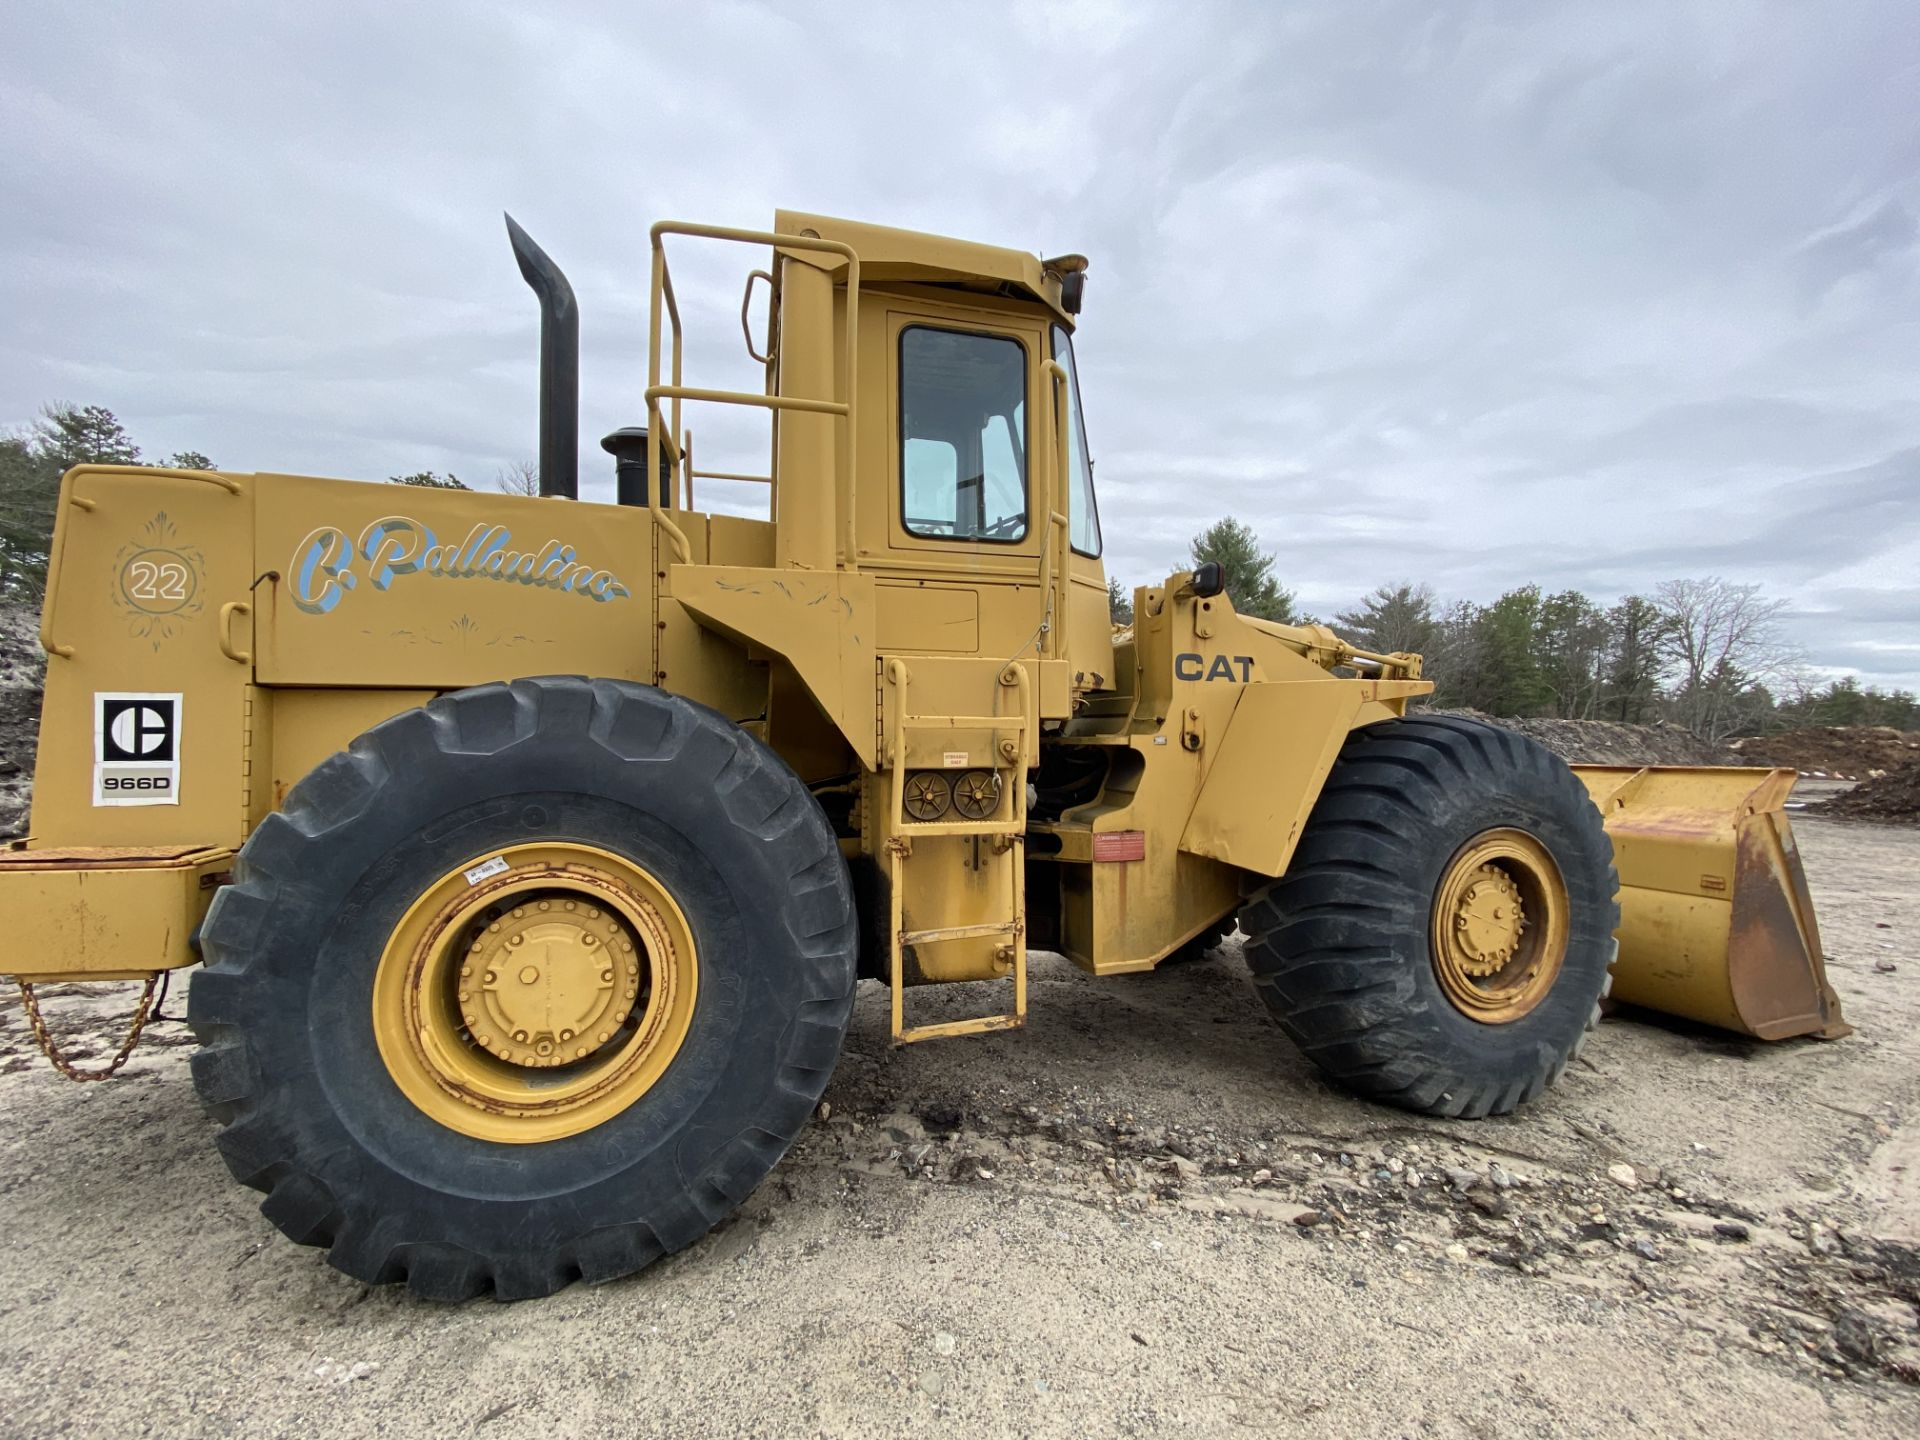 1980 Caterpillar 966D Wheel Loader s/n 99Y02108, Meter Reads 4,664 Hours, Have Title - Image 14 of 23